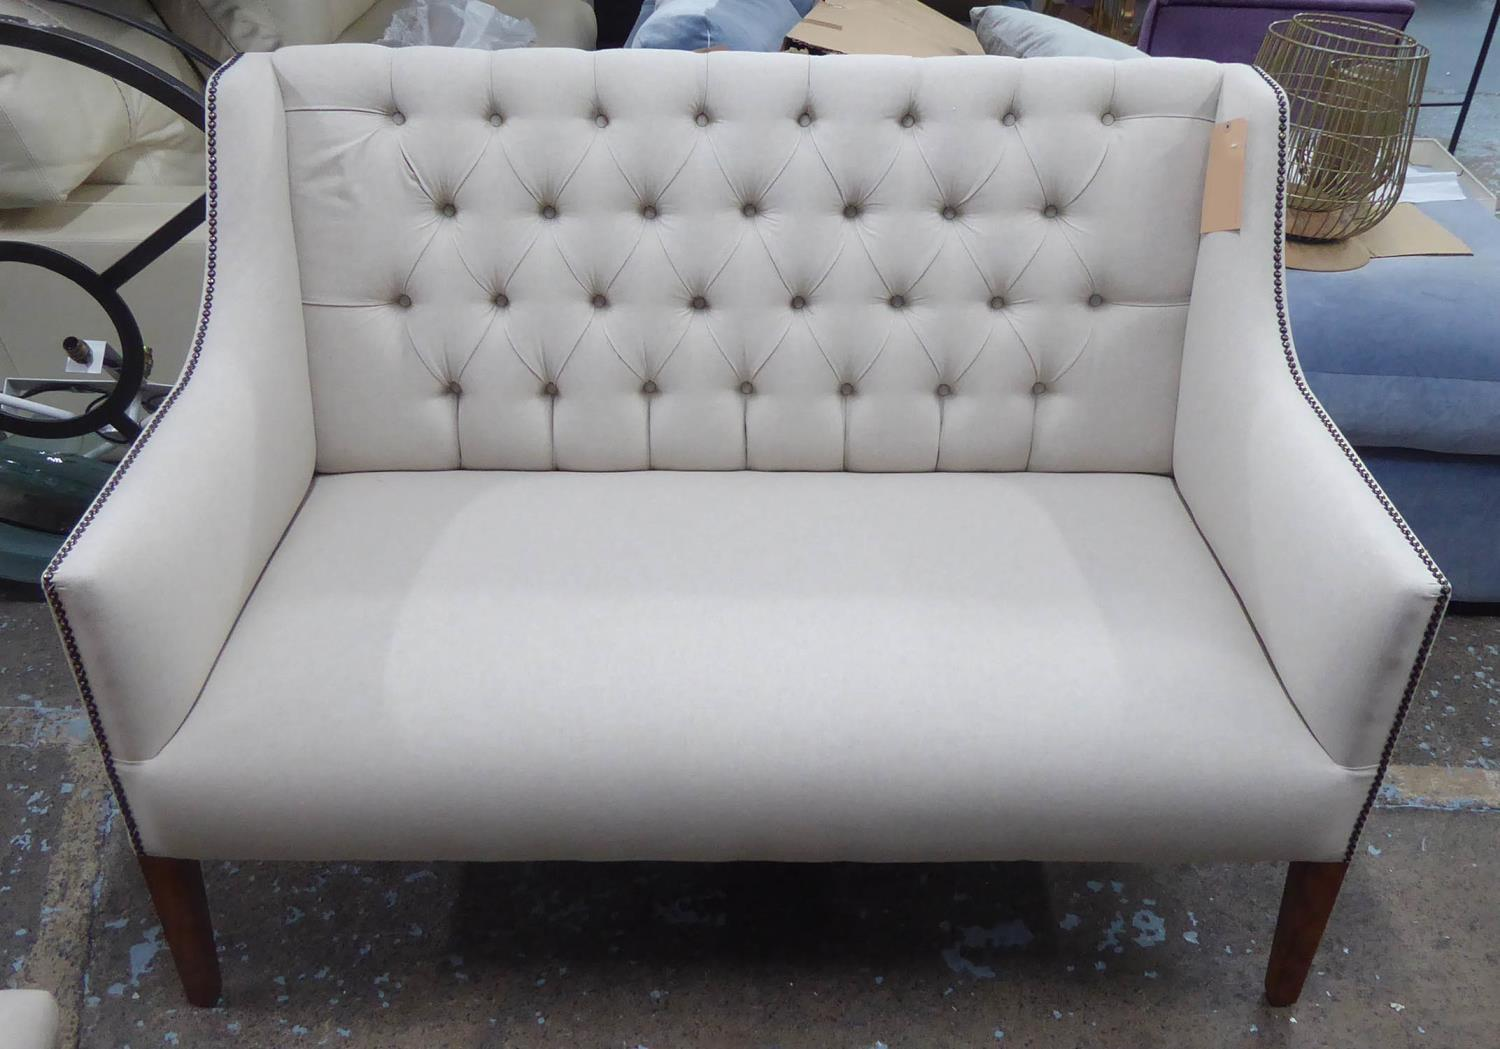 SOFA, contemporary buttoned back finish, neutral upholstery, 131cm W. - Image 2 of 5